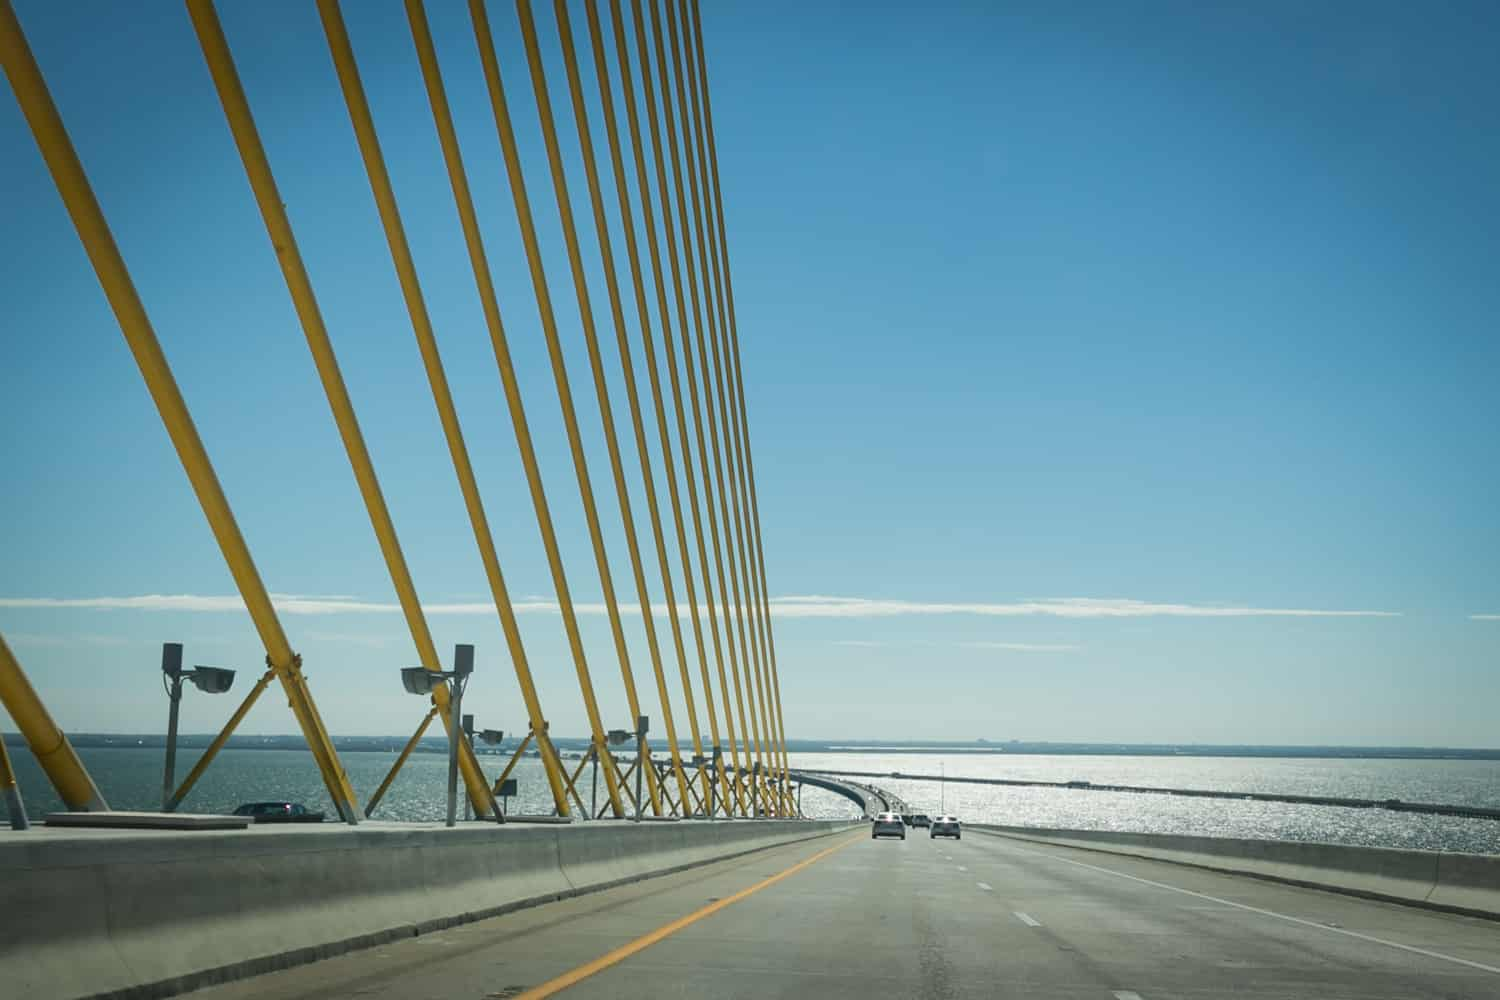 Photos of Sarasota including cars going over the Sunshine Skyway Bridge